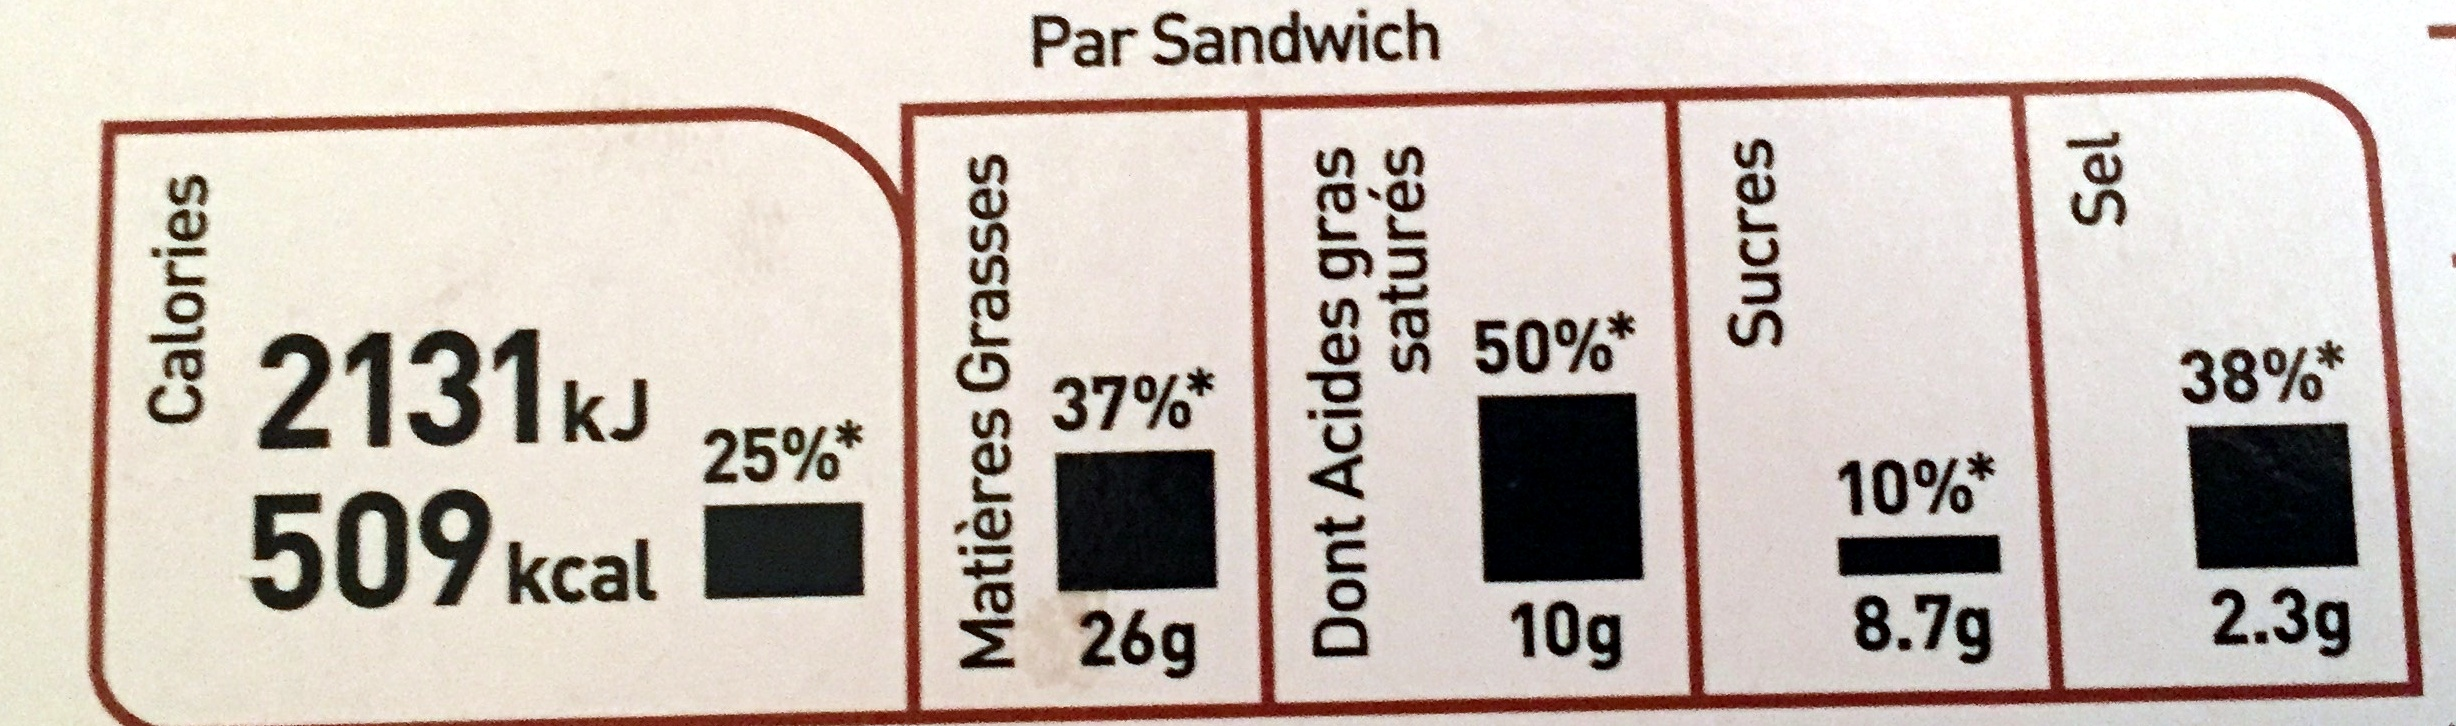 Big Mac - Nutrition facts